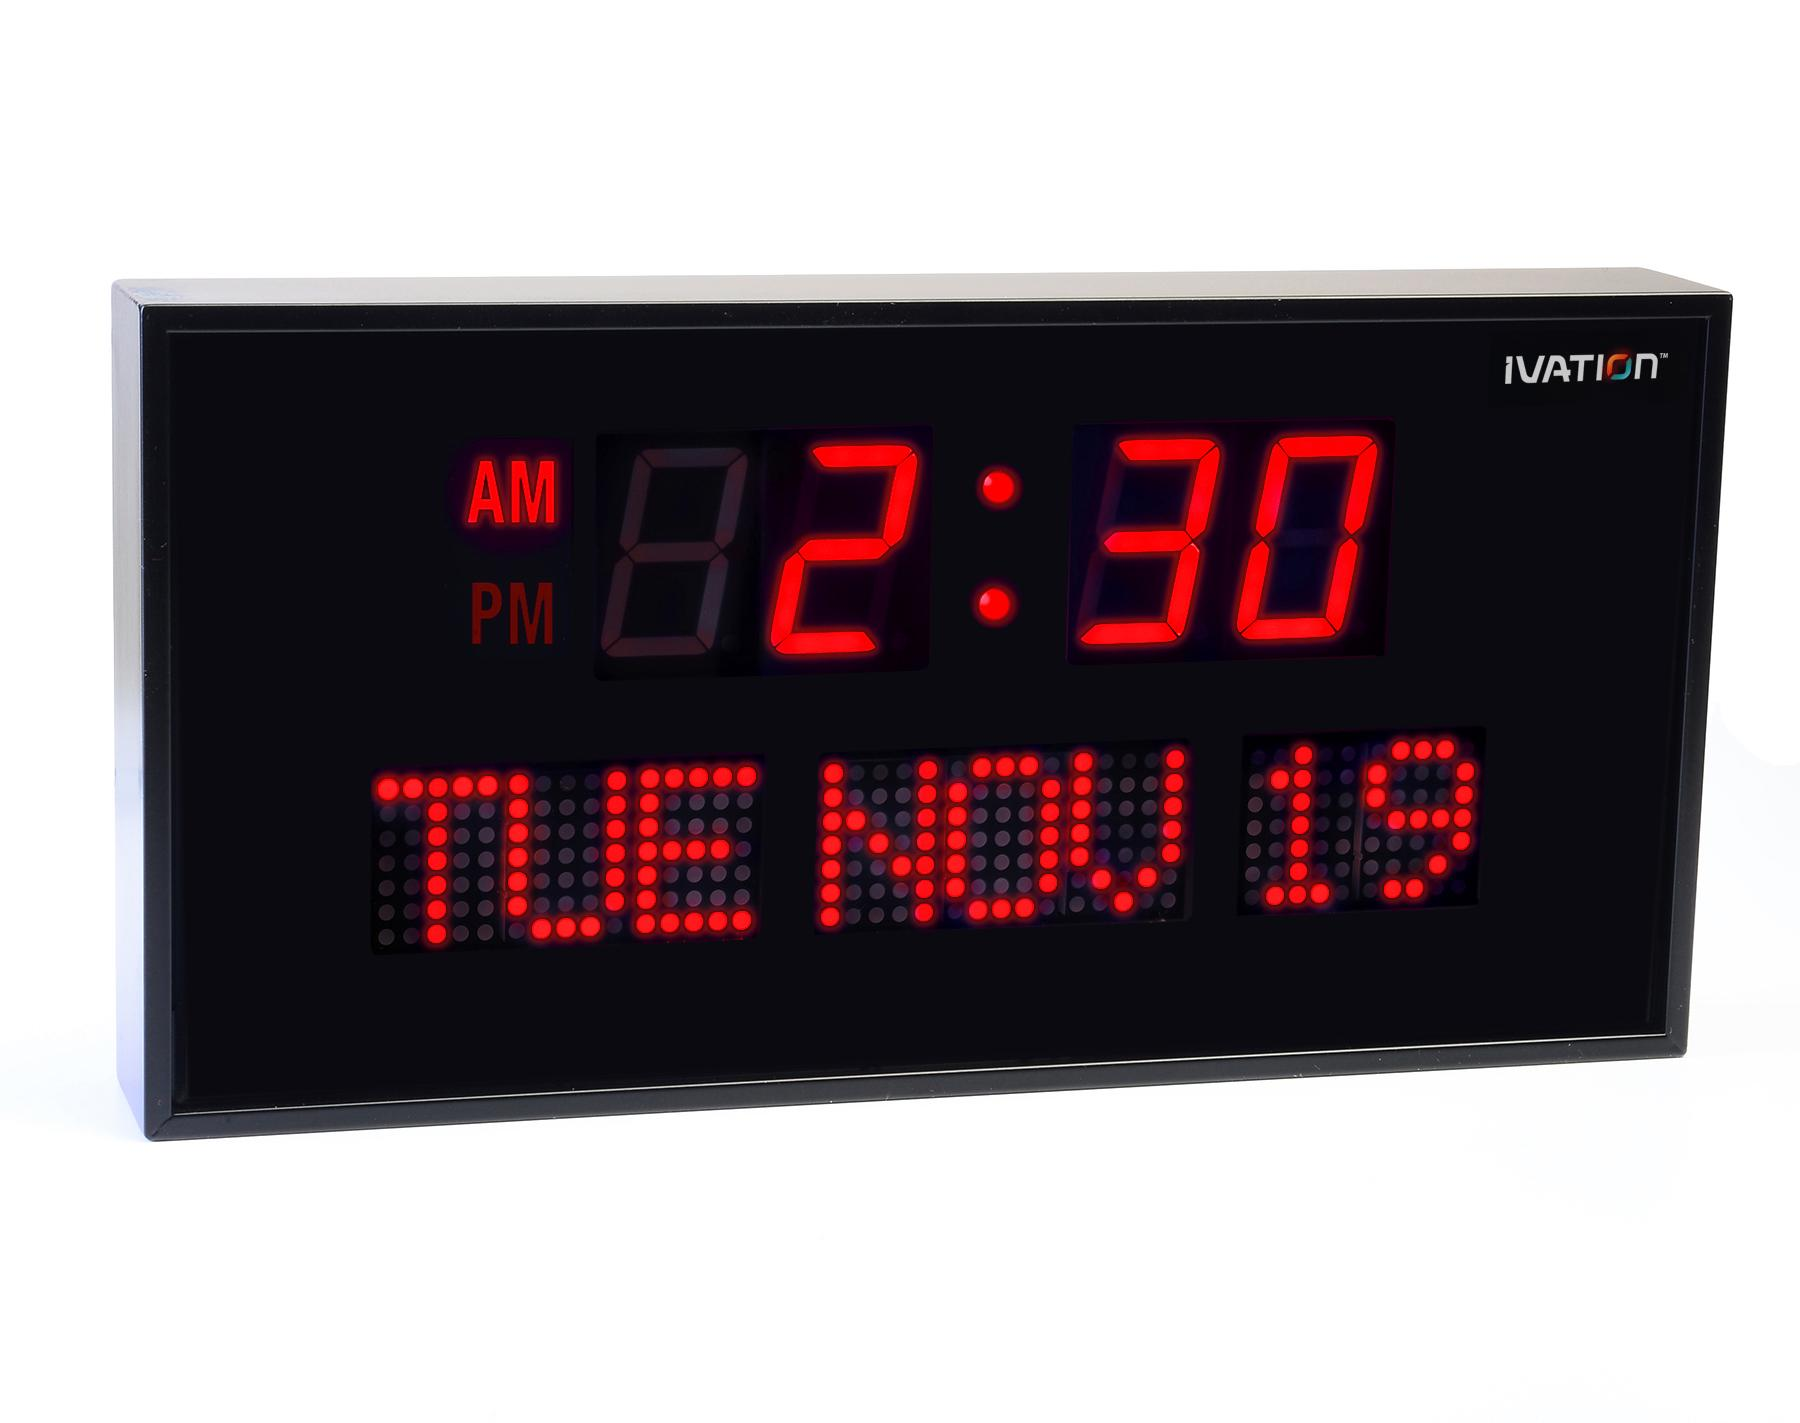 View larger for Led digital wall clock in india